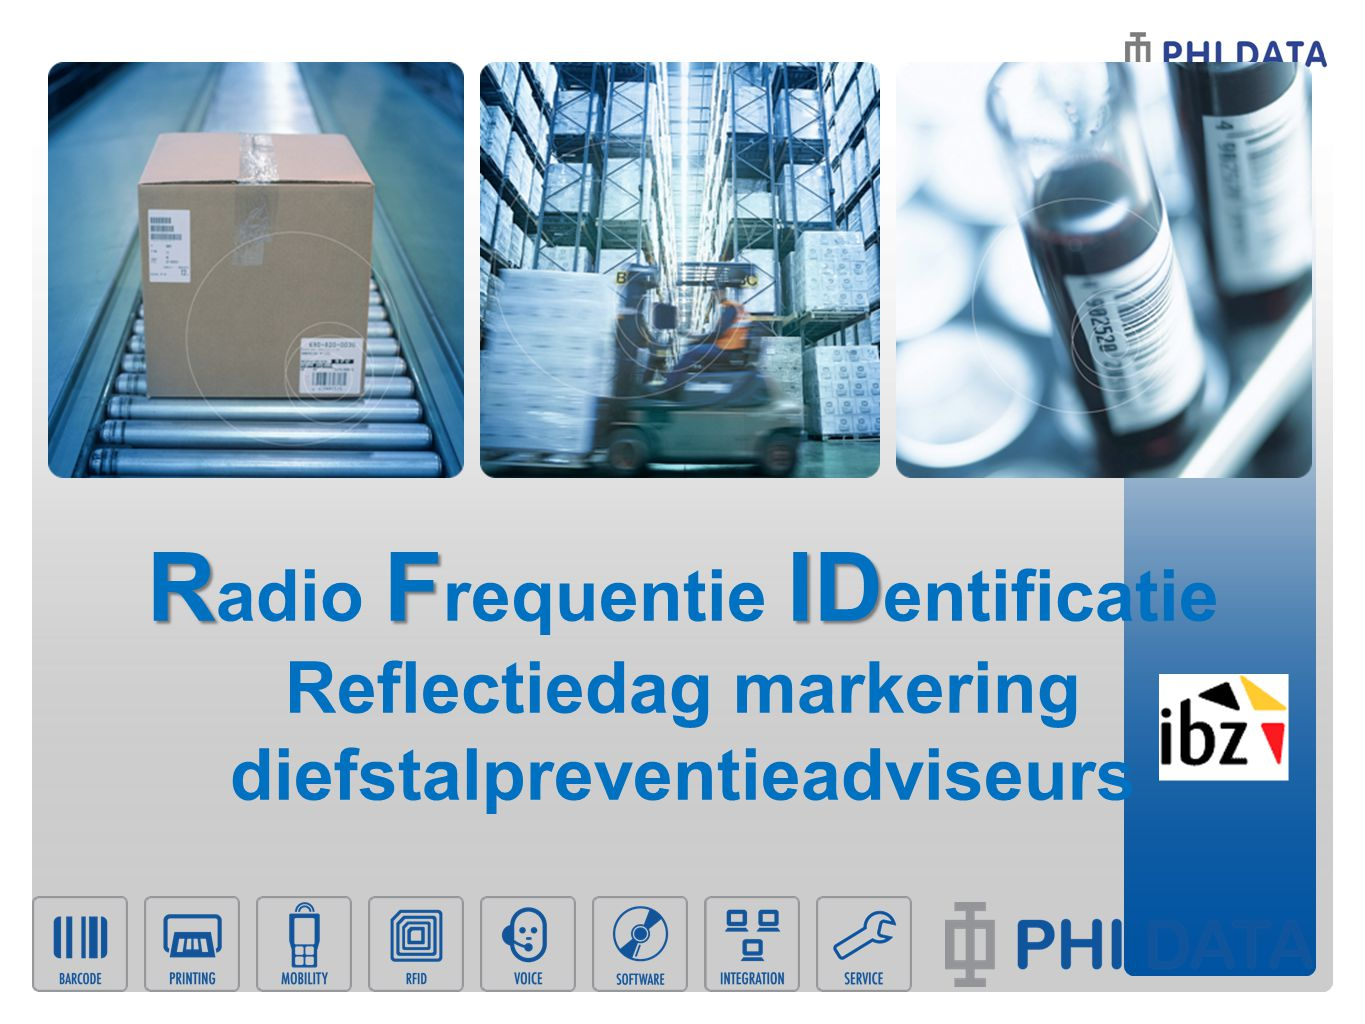 Radio Frequentie IDentificatie